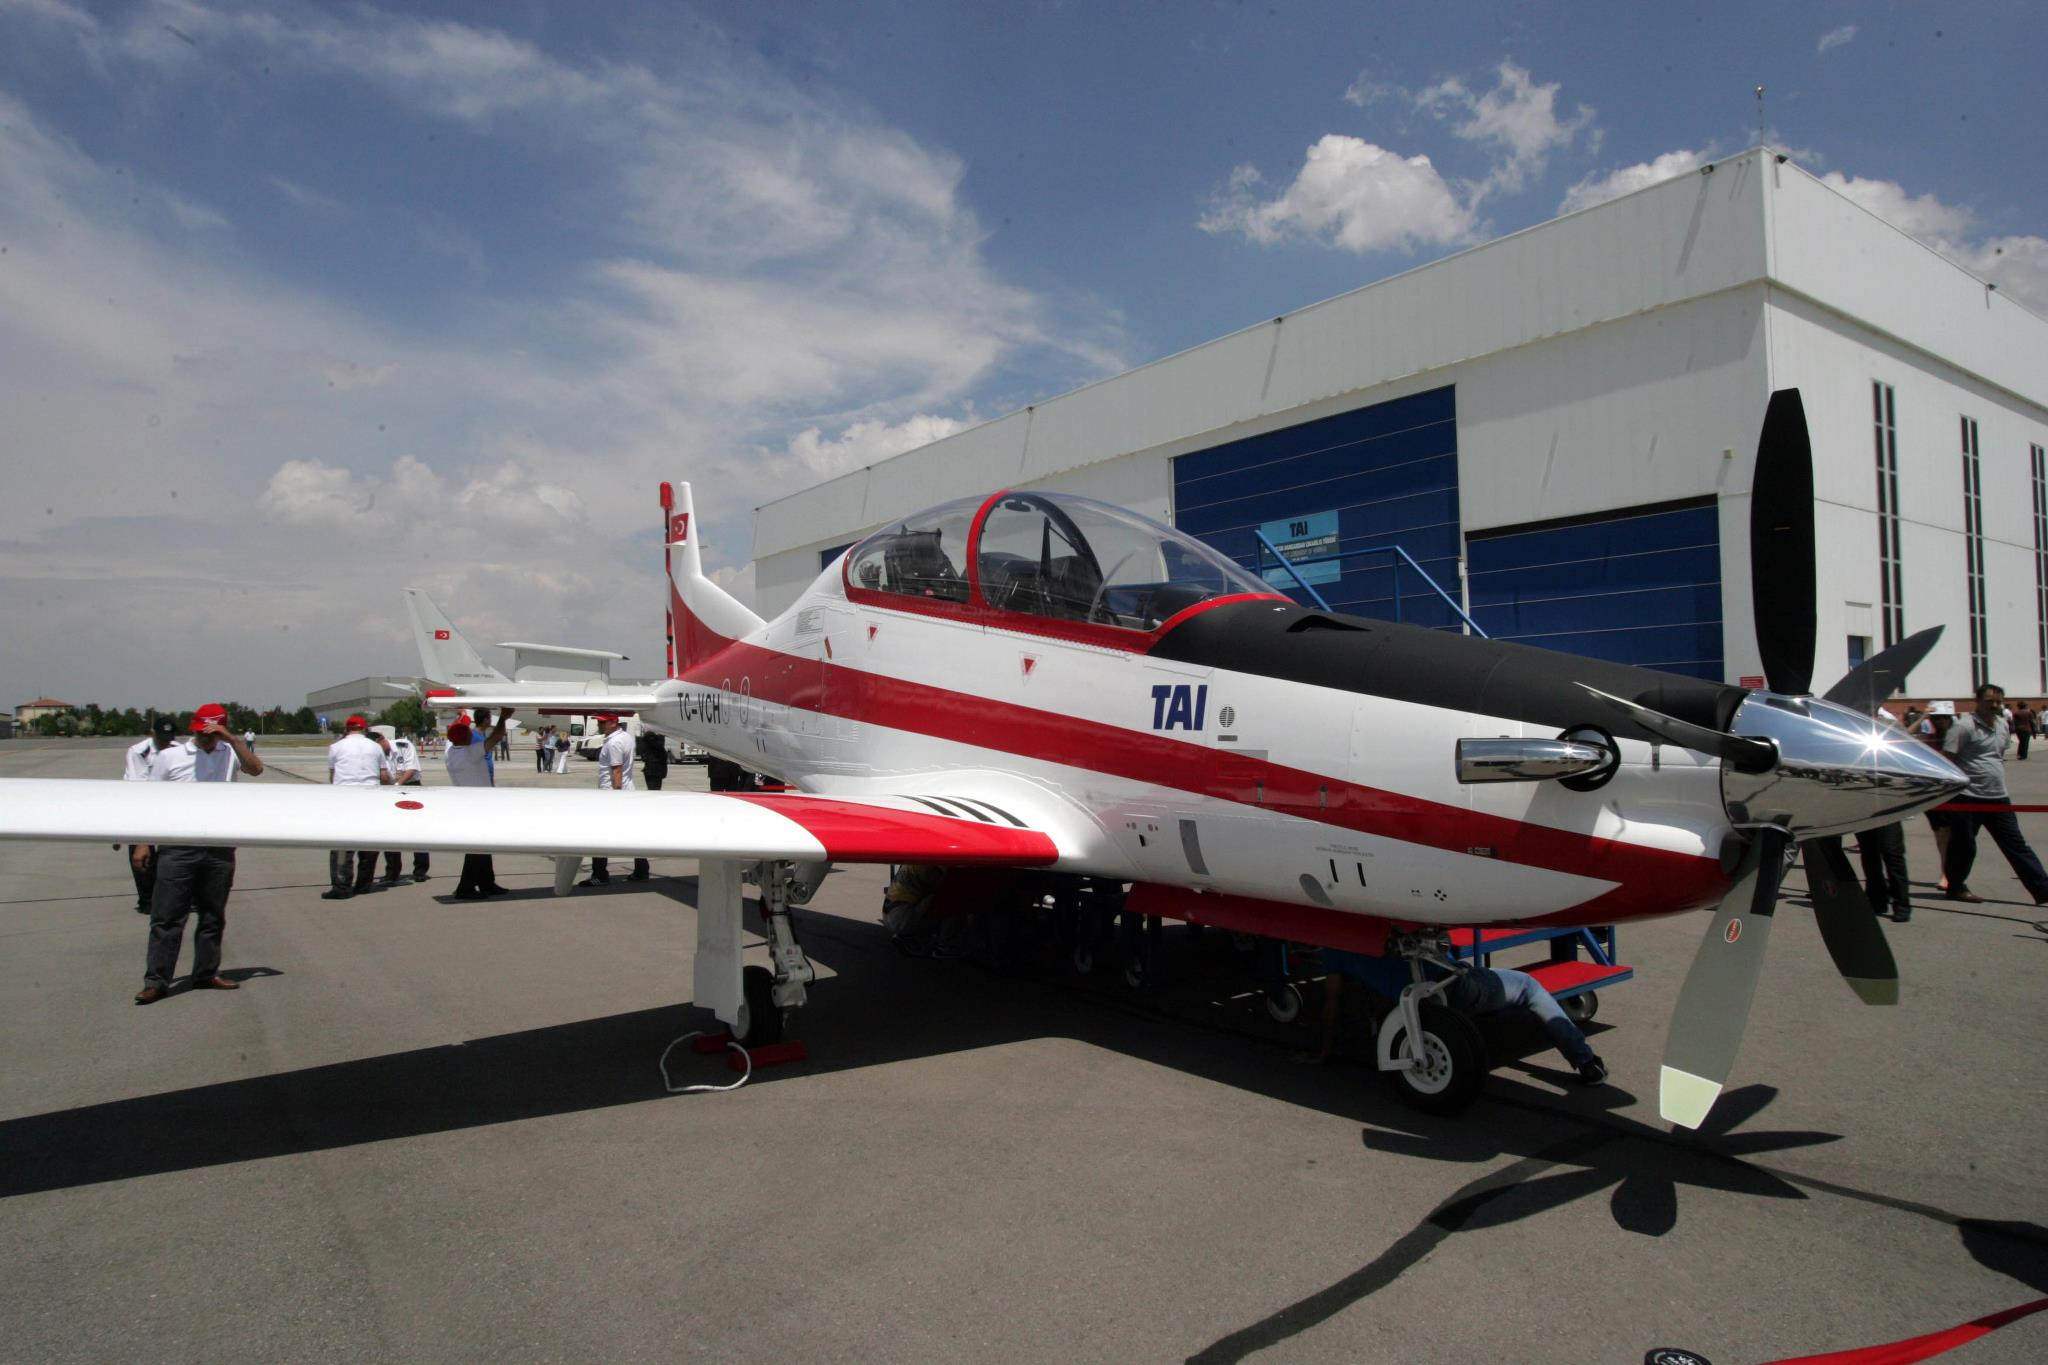 By 2018 the delivery of the new Turkish training planes